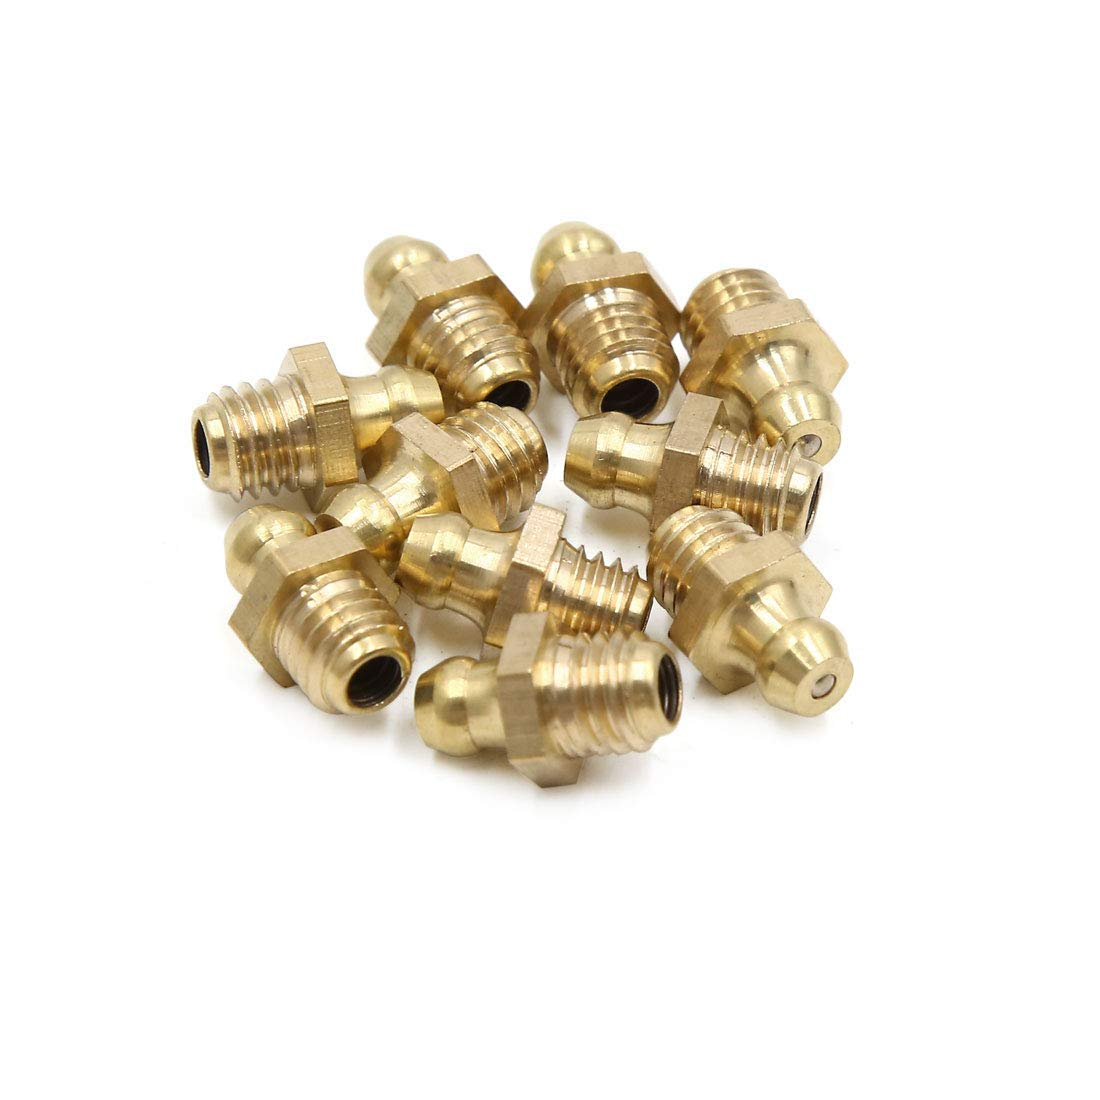 Uxcell 10pcs M8 X 1.25 Thread Brass Straight Grease Nipple Fitting For Car